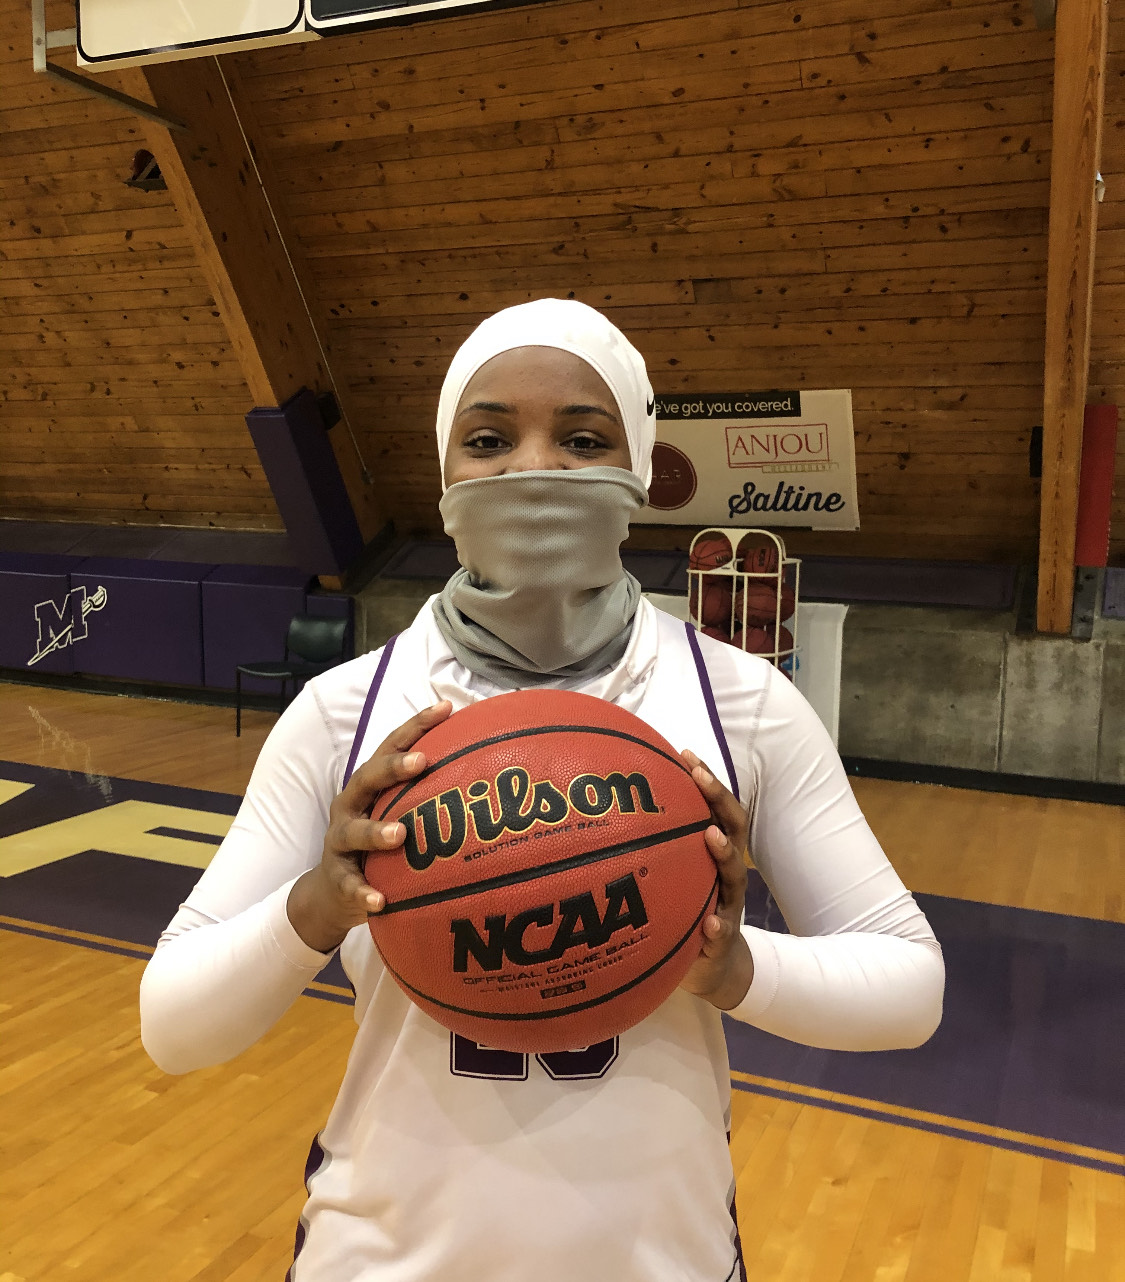 Millsaps Athlete Dia Fortenberry Reveals What It Is Like to Train in a Mask and Her Thoughts on NCAA's Decision to Cancel D-1 Sports